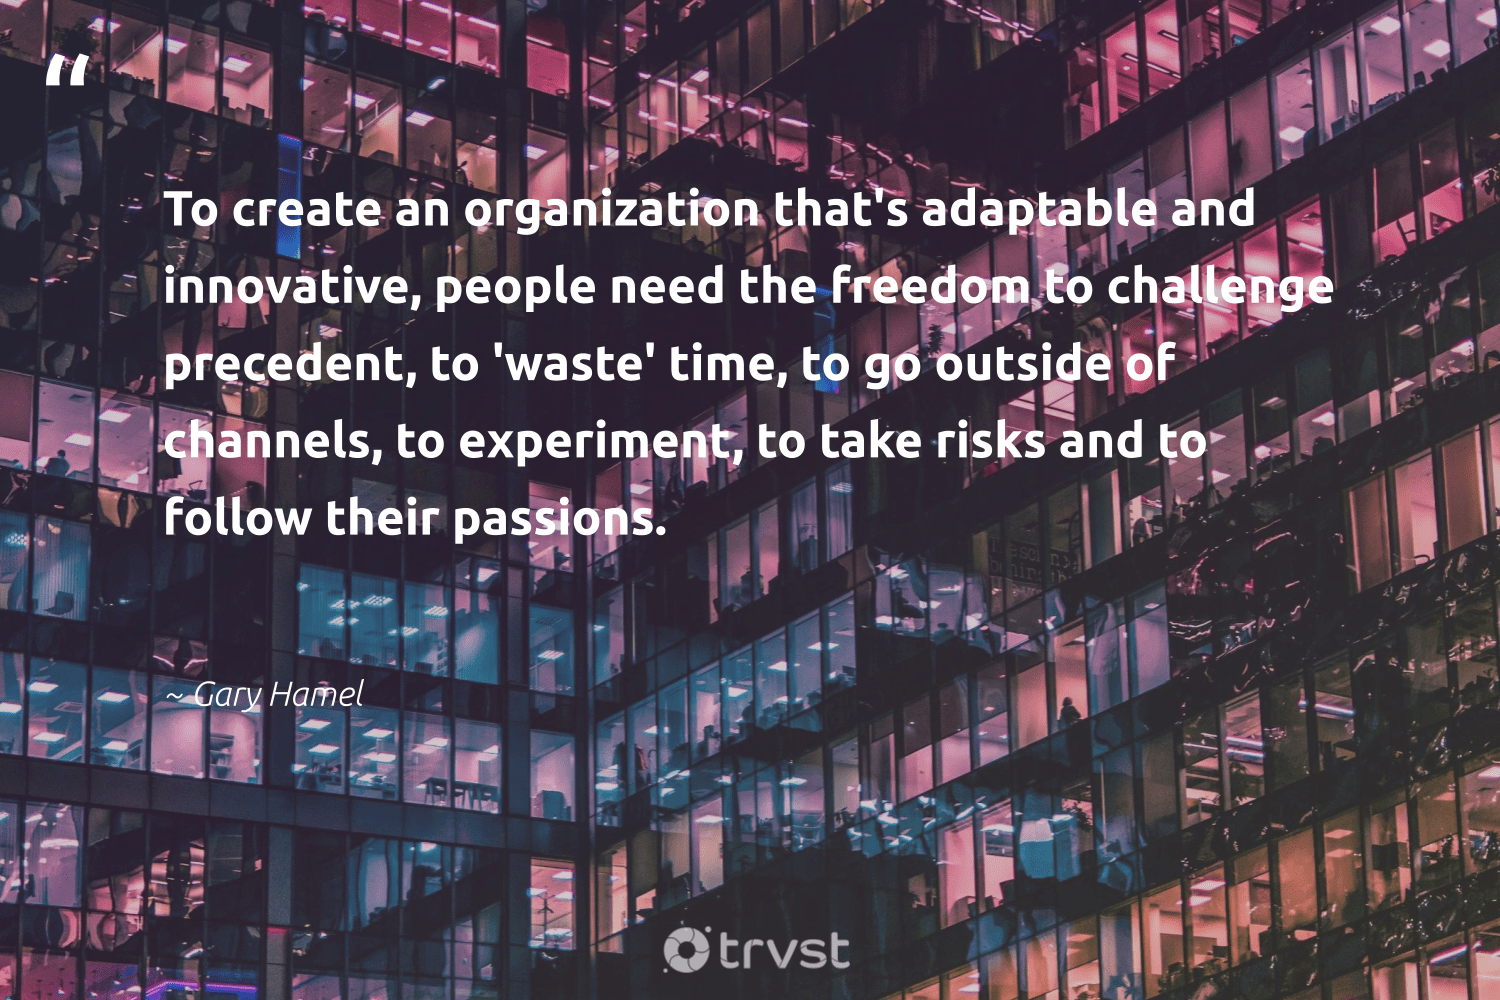 """""""To create an organization that's adaptable and innovative, people need the freedom to challenge precedent, to 'waste' time, to go outside of channels, to experiment, to take risks and to follow their passions.""""  - Gary Hamel #trvst #quotes #freedom #waste #weareallone #planetearthfirst #ethicalbusiness #bethechange #betterplanet #takeaction #socialchange #changetheworld"""